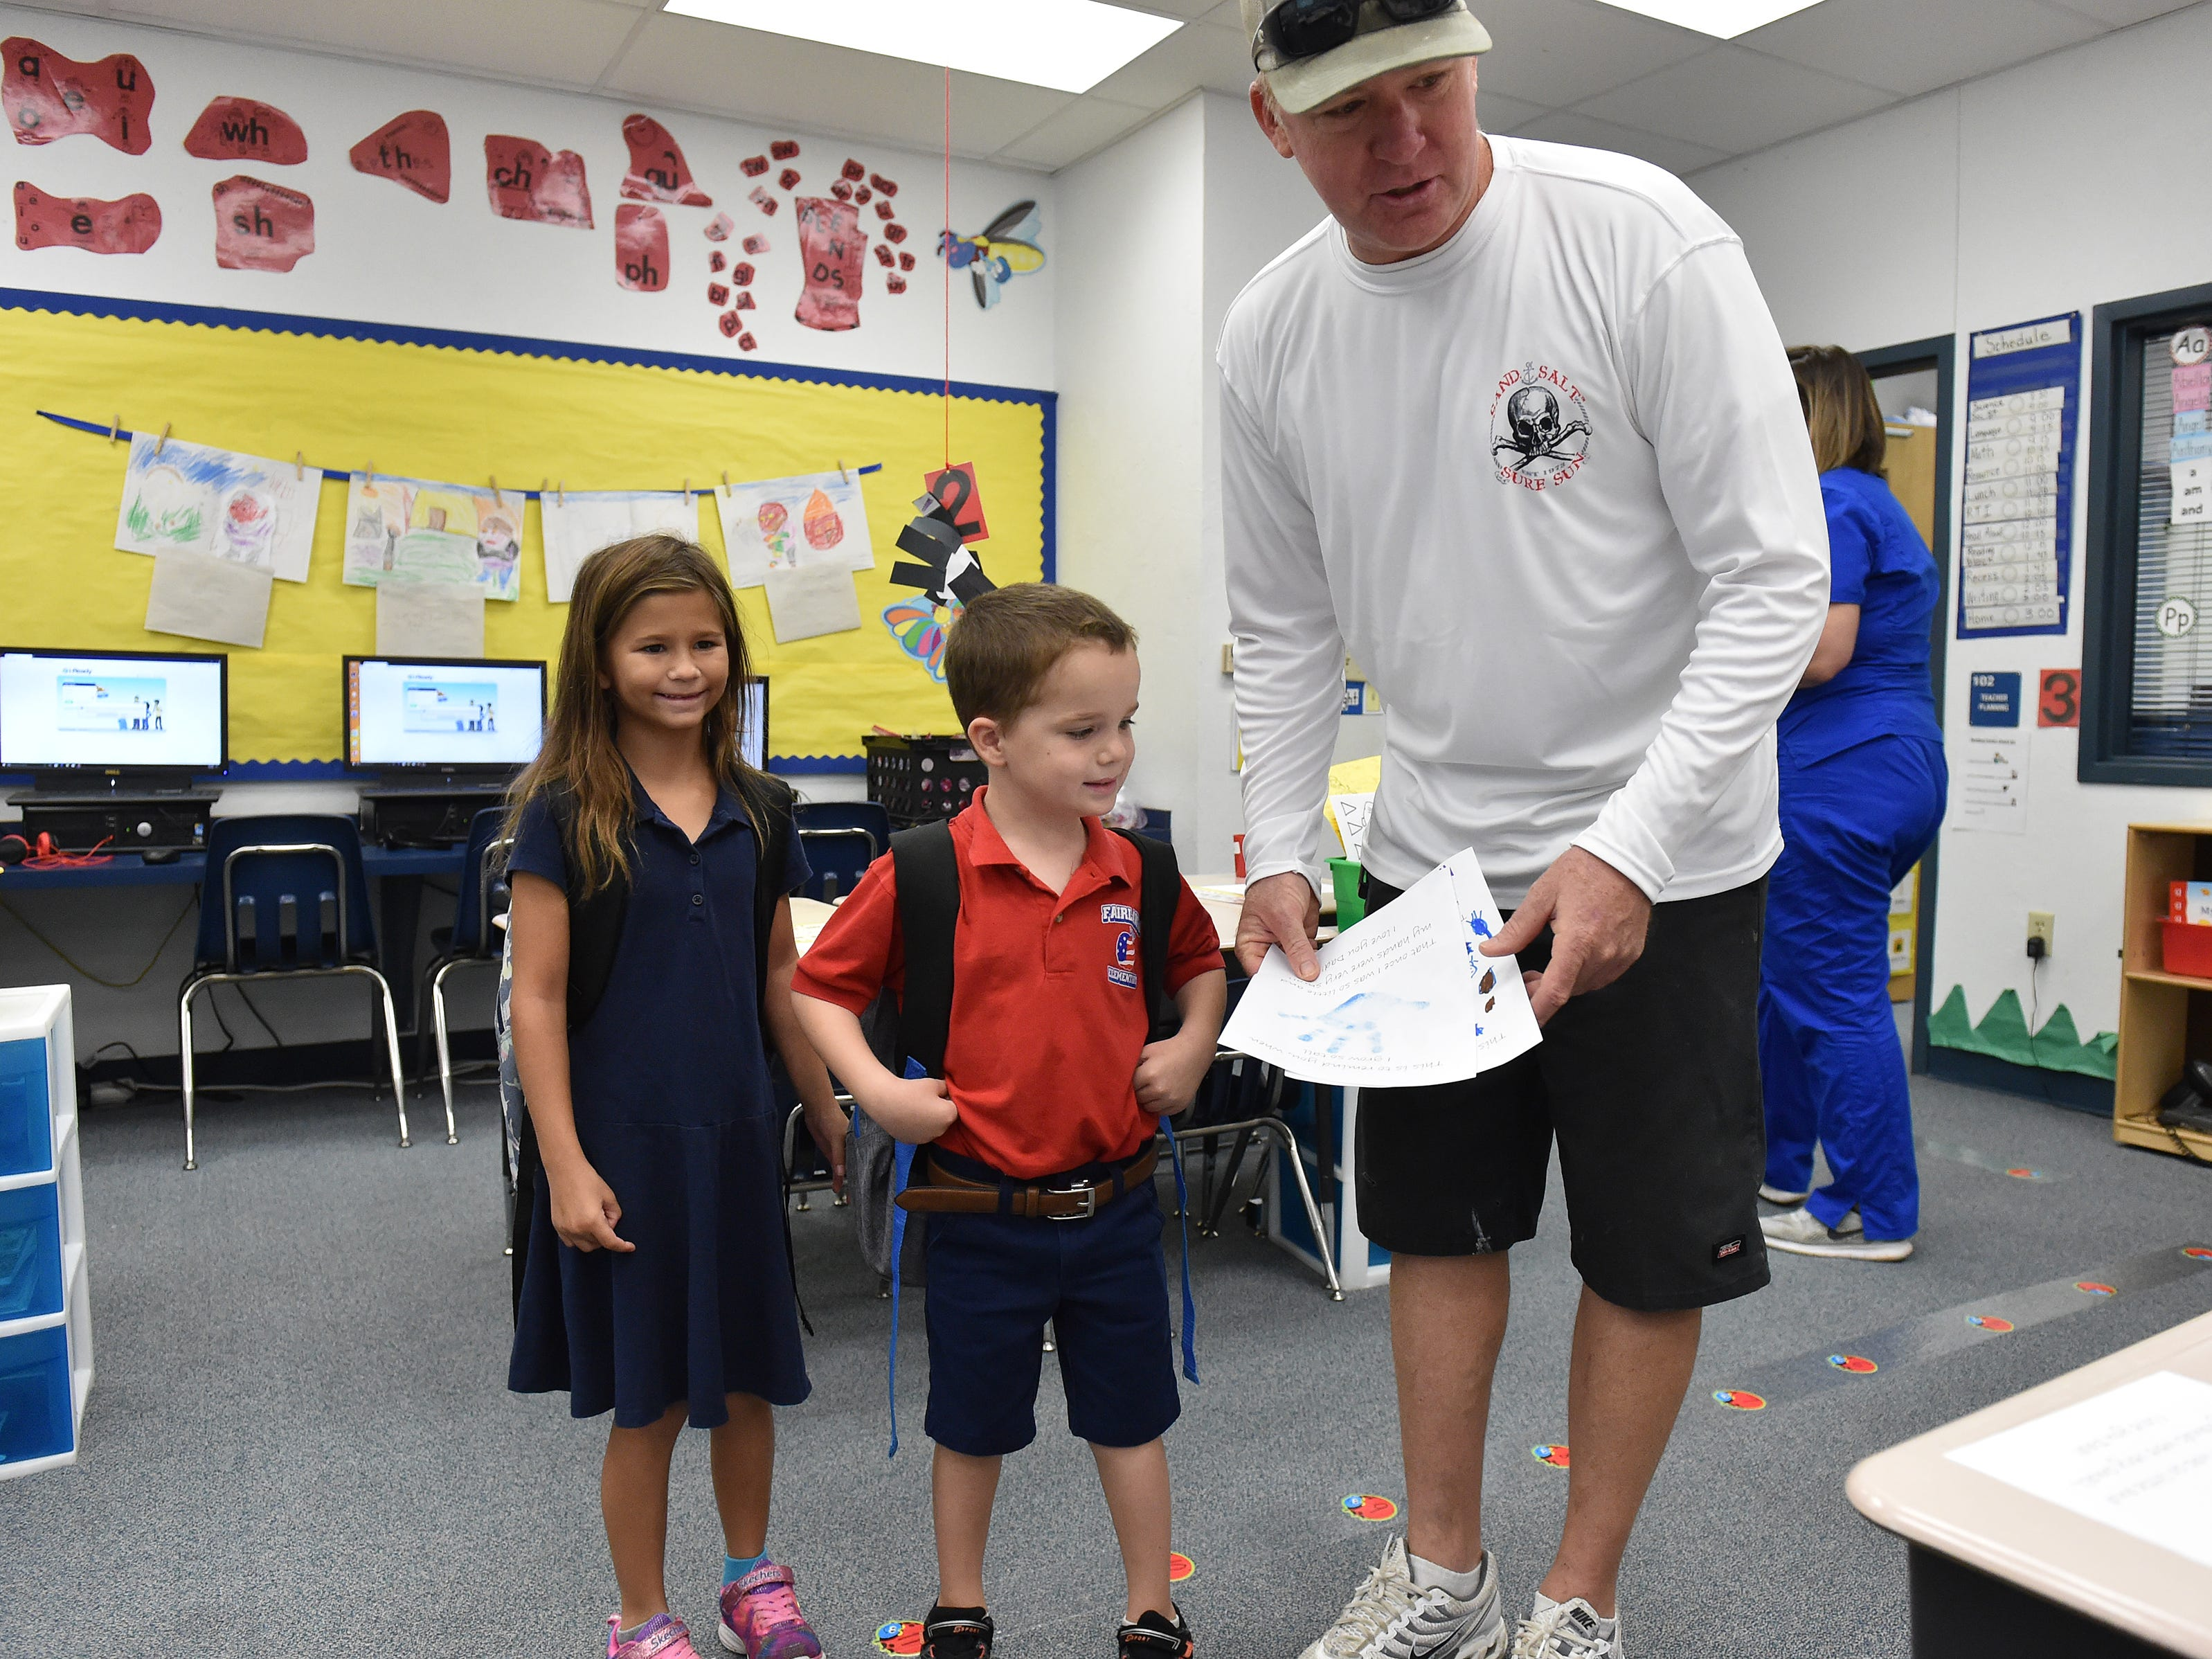 Fathers escort their children to class during Fairlawn Elementary School's 'Take your dad to school day' on Wednesday, Sept. 26, 2018, in Fort Pierce. Dozens of fathers lined up with their children outside the school to walk their kids to their classrooms, meet teachers, and sign a contract promising their commitment to their children's education.